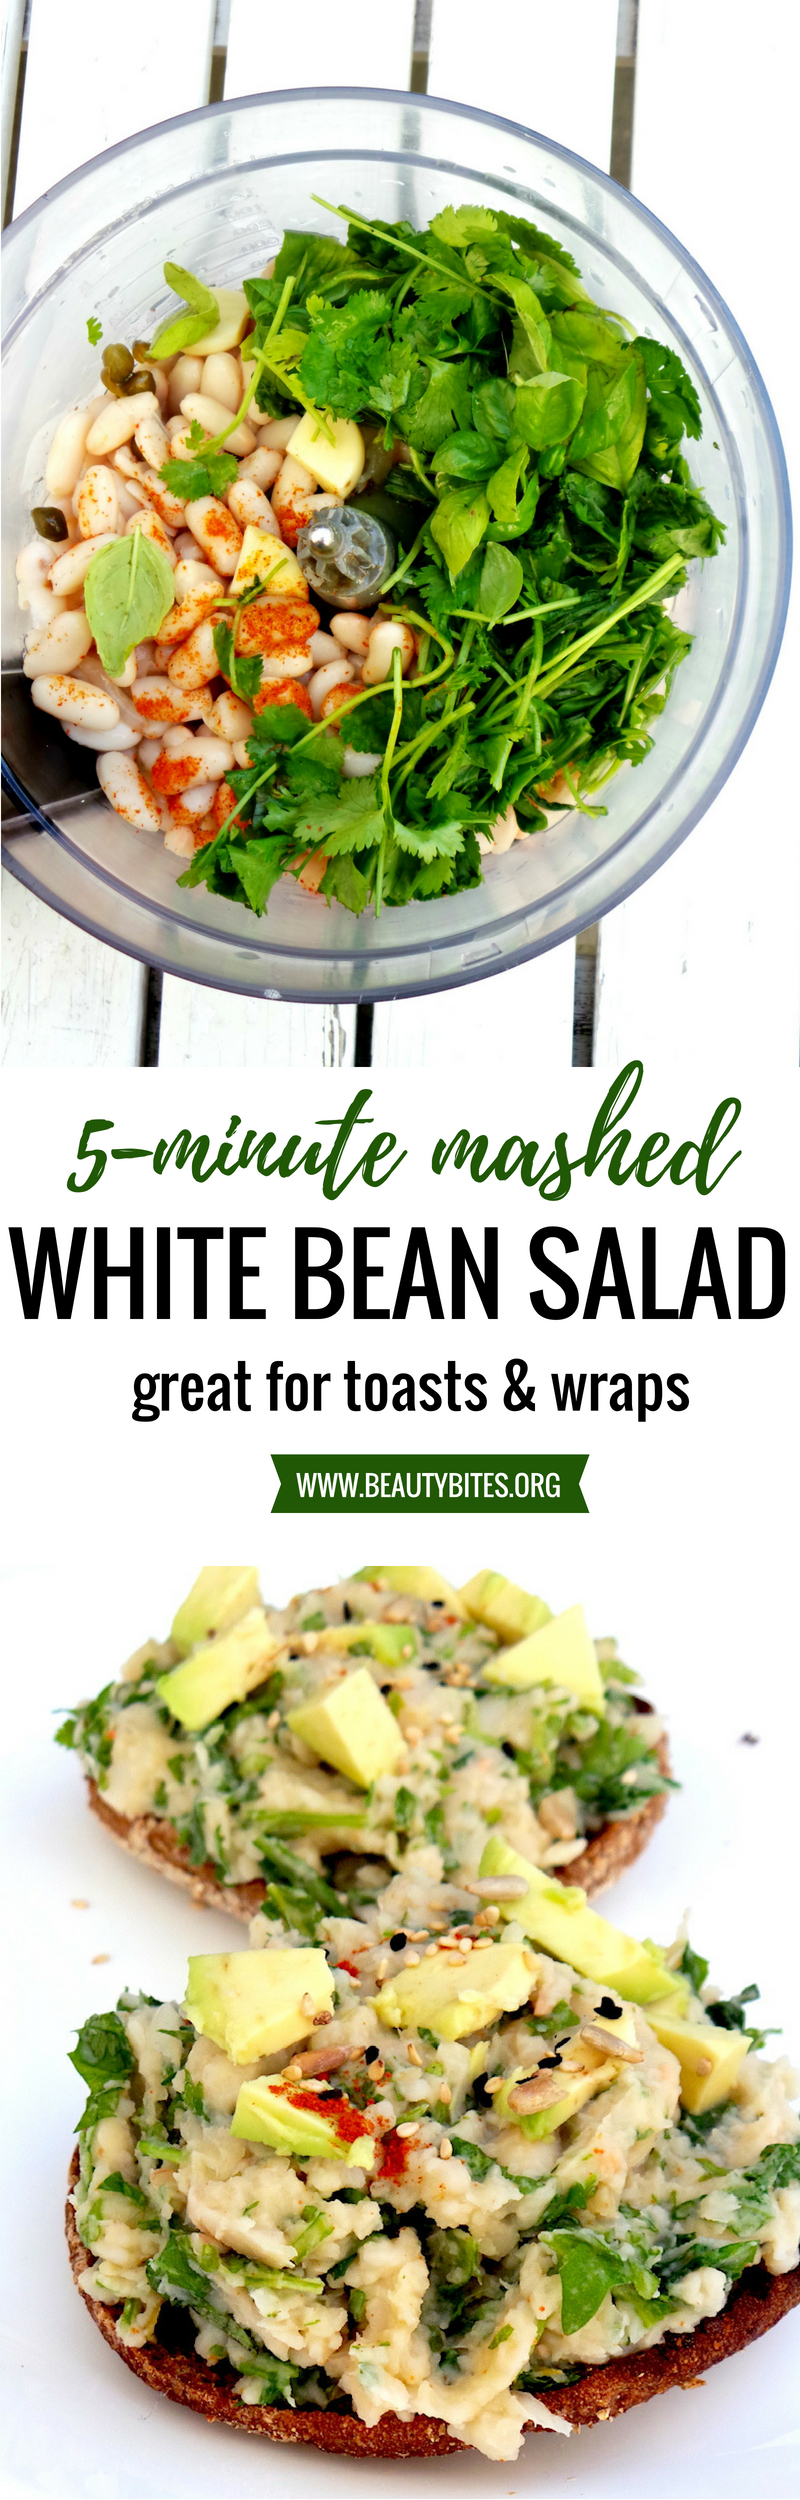 Easy vegan salad for sandwiches or wraps! You only need white beans, vegetables, a food processor and 5 minutes to make this - perfect if you're hungry and want to eat something healthy, but have not meal prepped! This is an easy and healthy lunch salad that will keep you full for longer! | www.beautybites.org